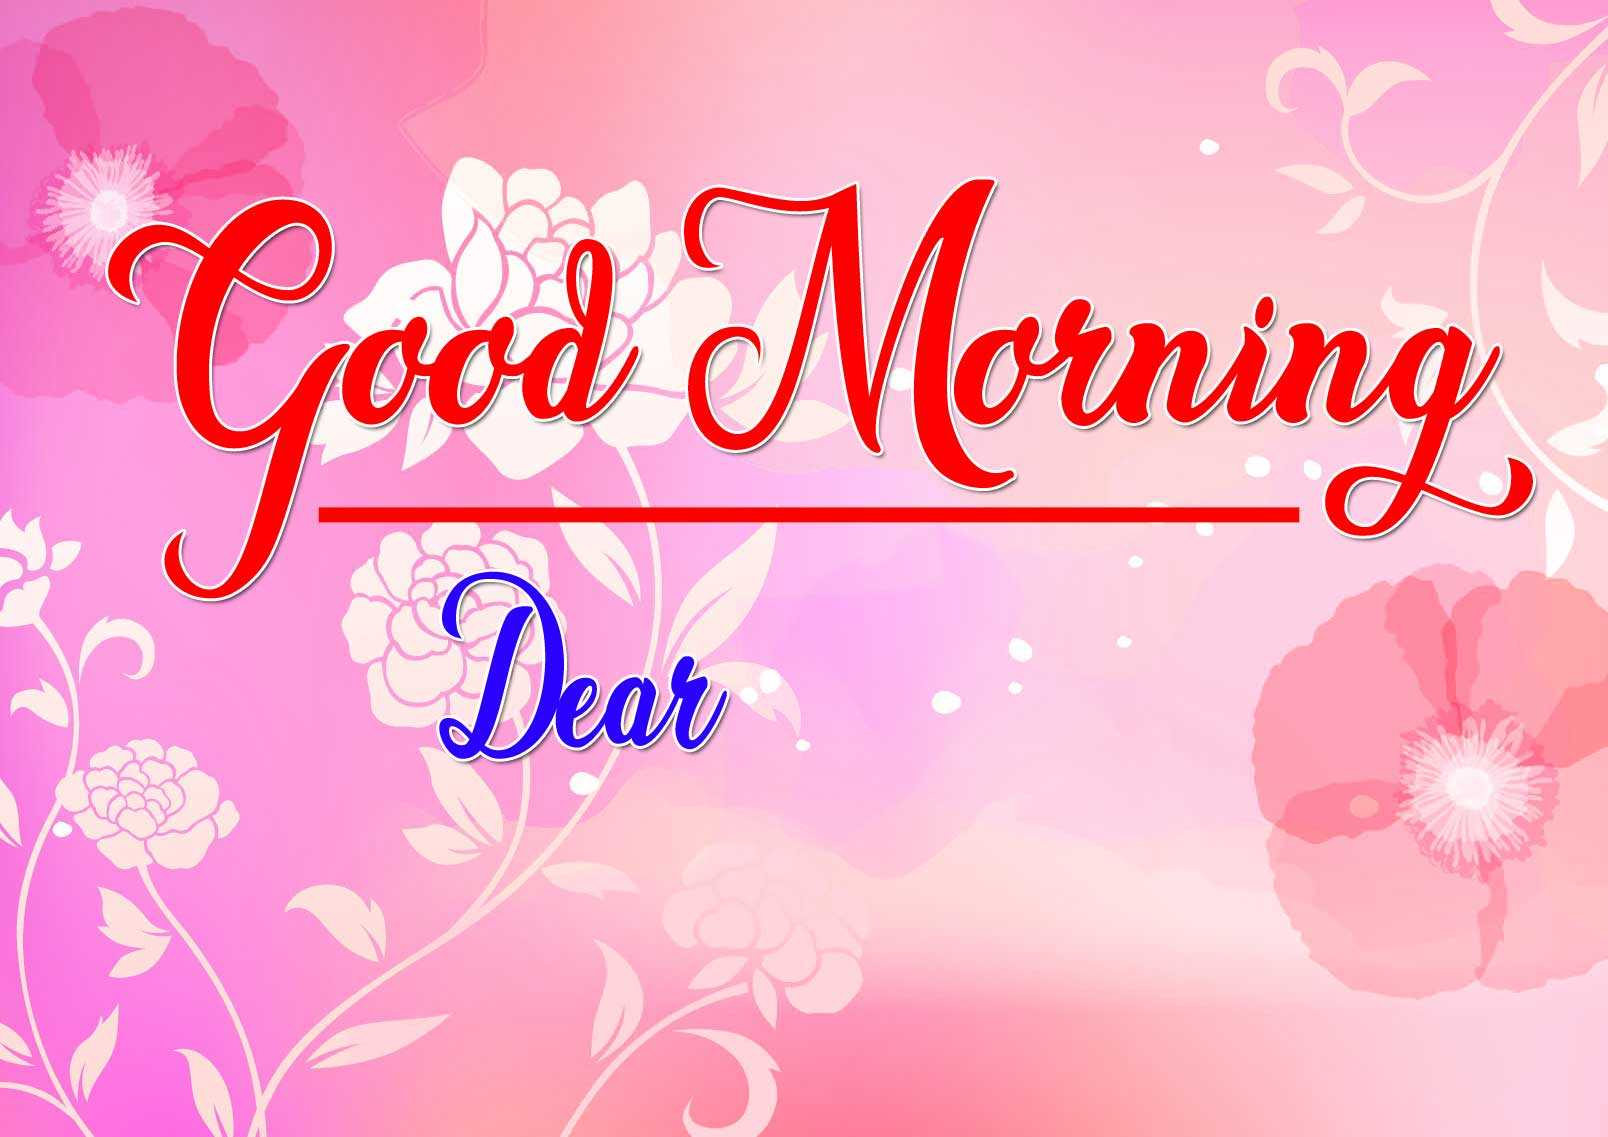 Good Morning Wishes Wallpaper Pics for Whatsapp